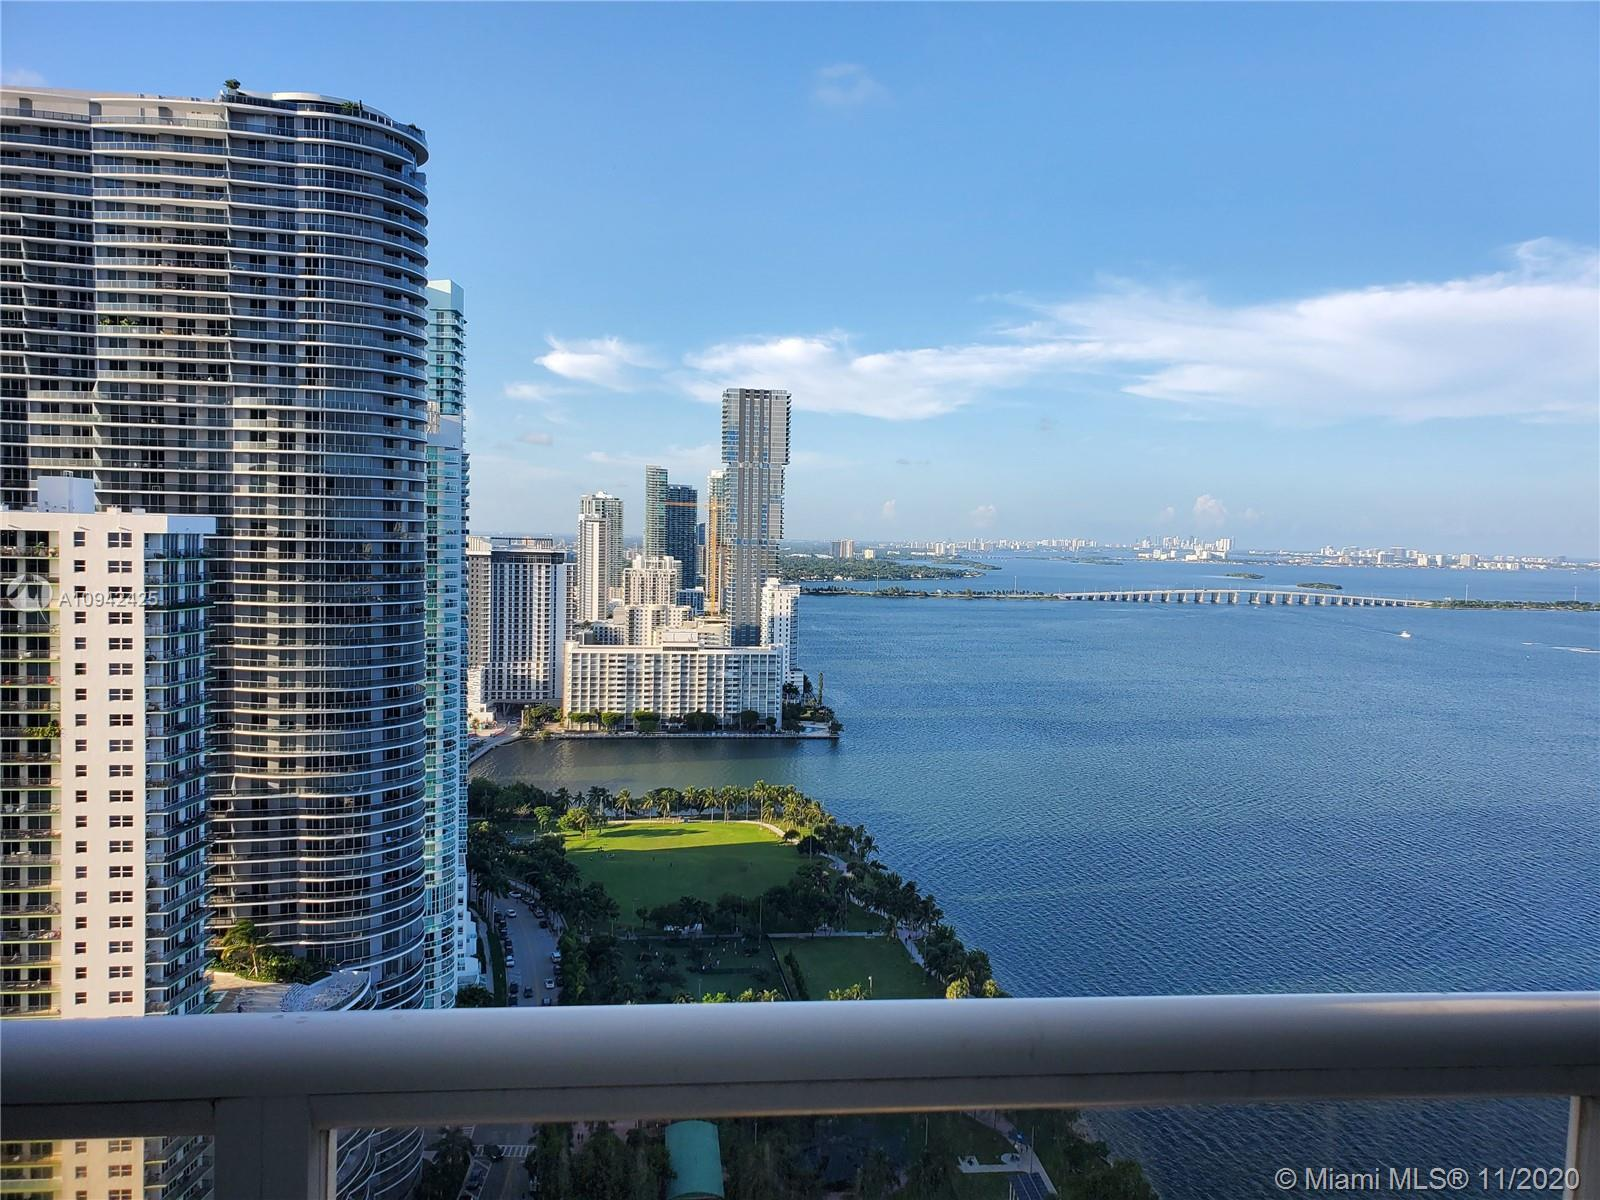 Beautiful Penthouse overlooking Biscayne Bay and the Atlantic Ocean. 1 Bedroom | 1.5 Bathrooms. LG A